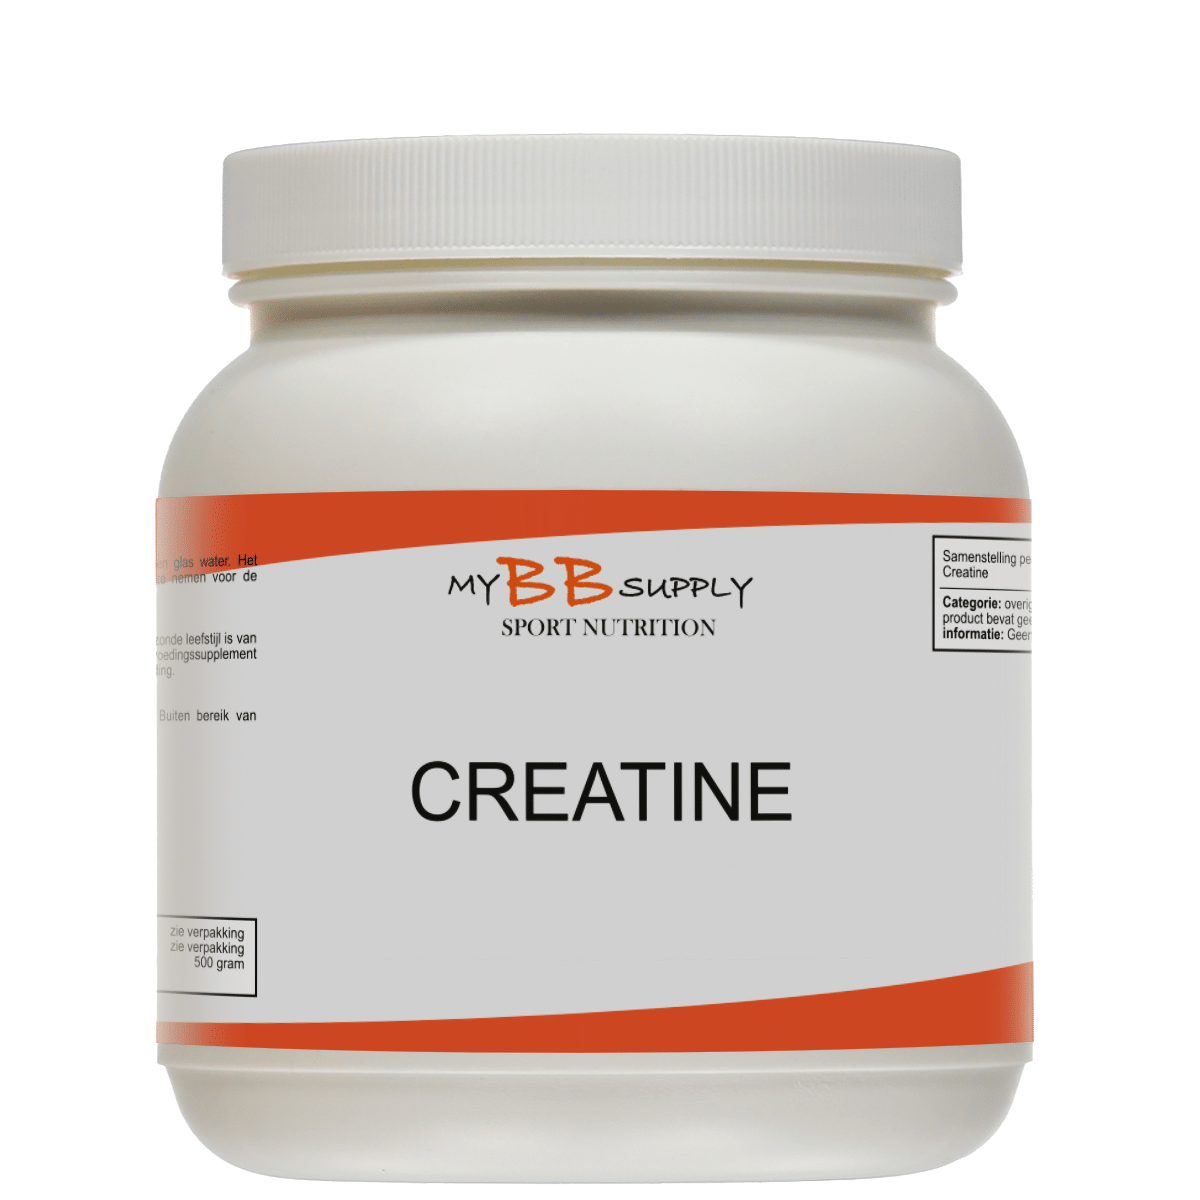 mybbsupply creatine